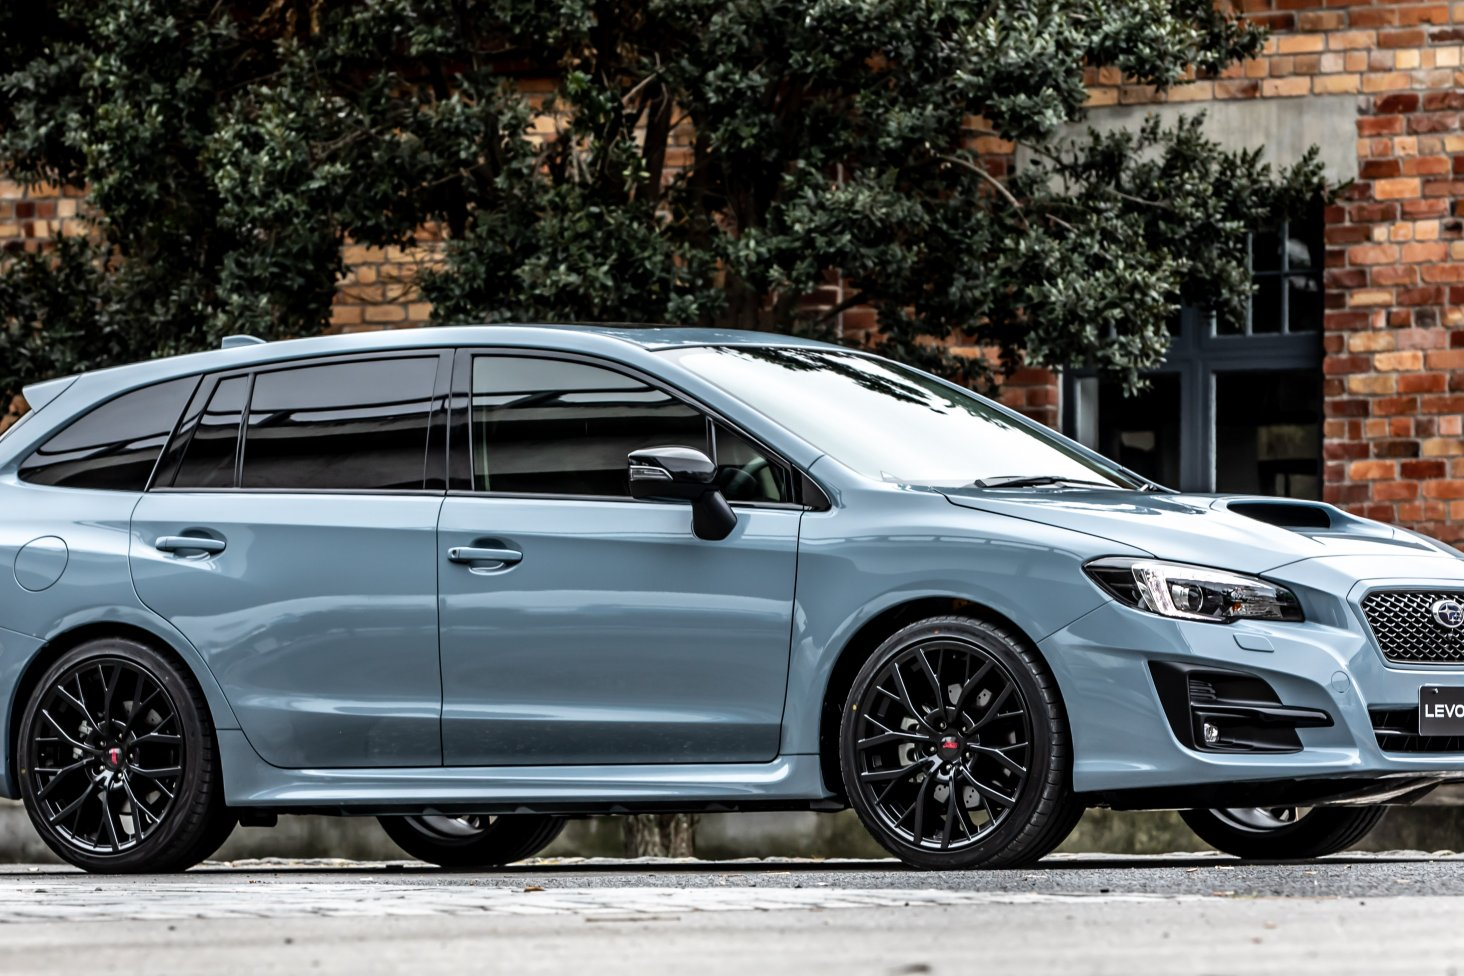 The Subaru Levorg is now available in Cool Grey